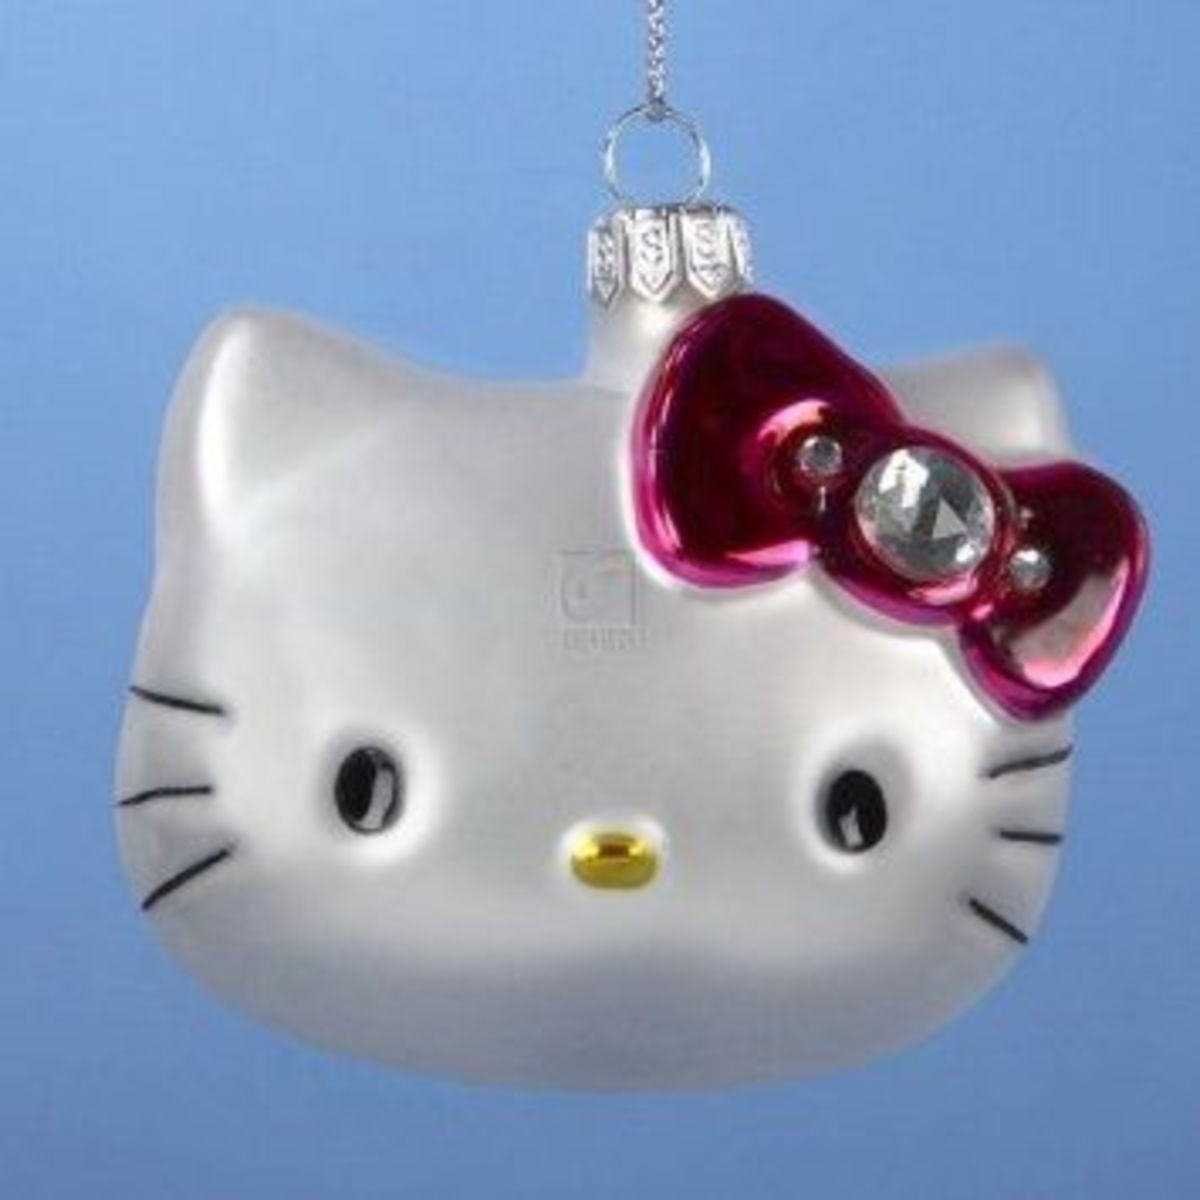 The Hello Kitty Cat Ornament Is A Favorite Of Kitty Fans And Cat Lovers Alike.  This Cute Cat Ornament Will Make A Welcome Addition To Any Cat Ornament Collection Or To Any Hello Kitty Collection.  Image Credit: Amazon